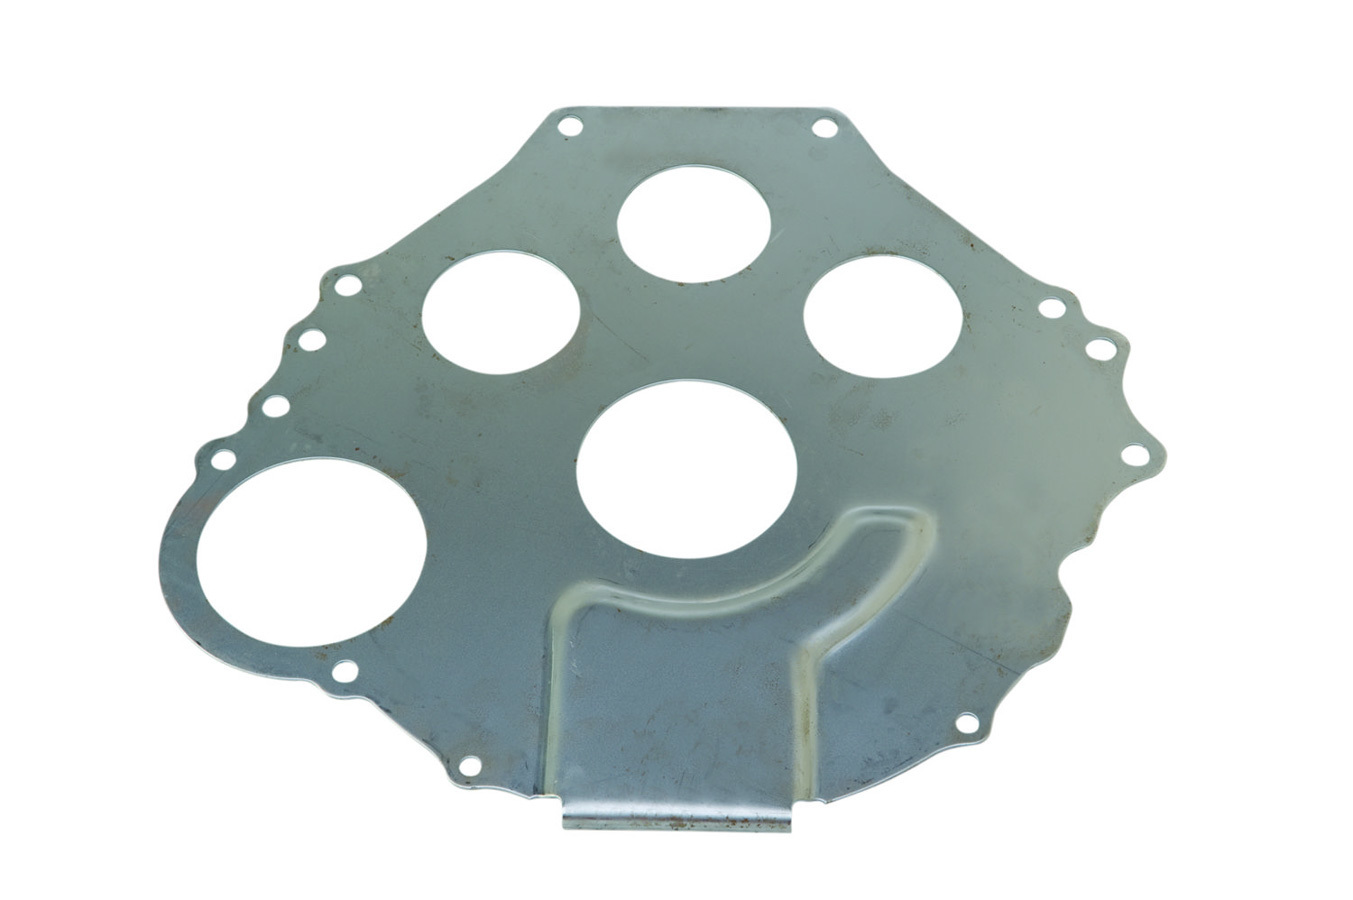 Ford Starter Index Plate 79-95 Mustangs V8 Manual